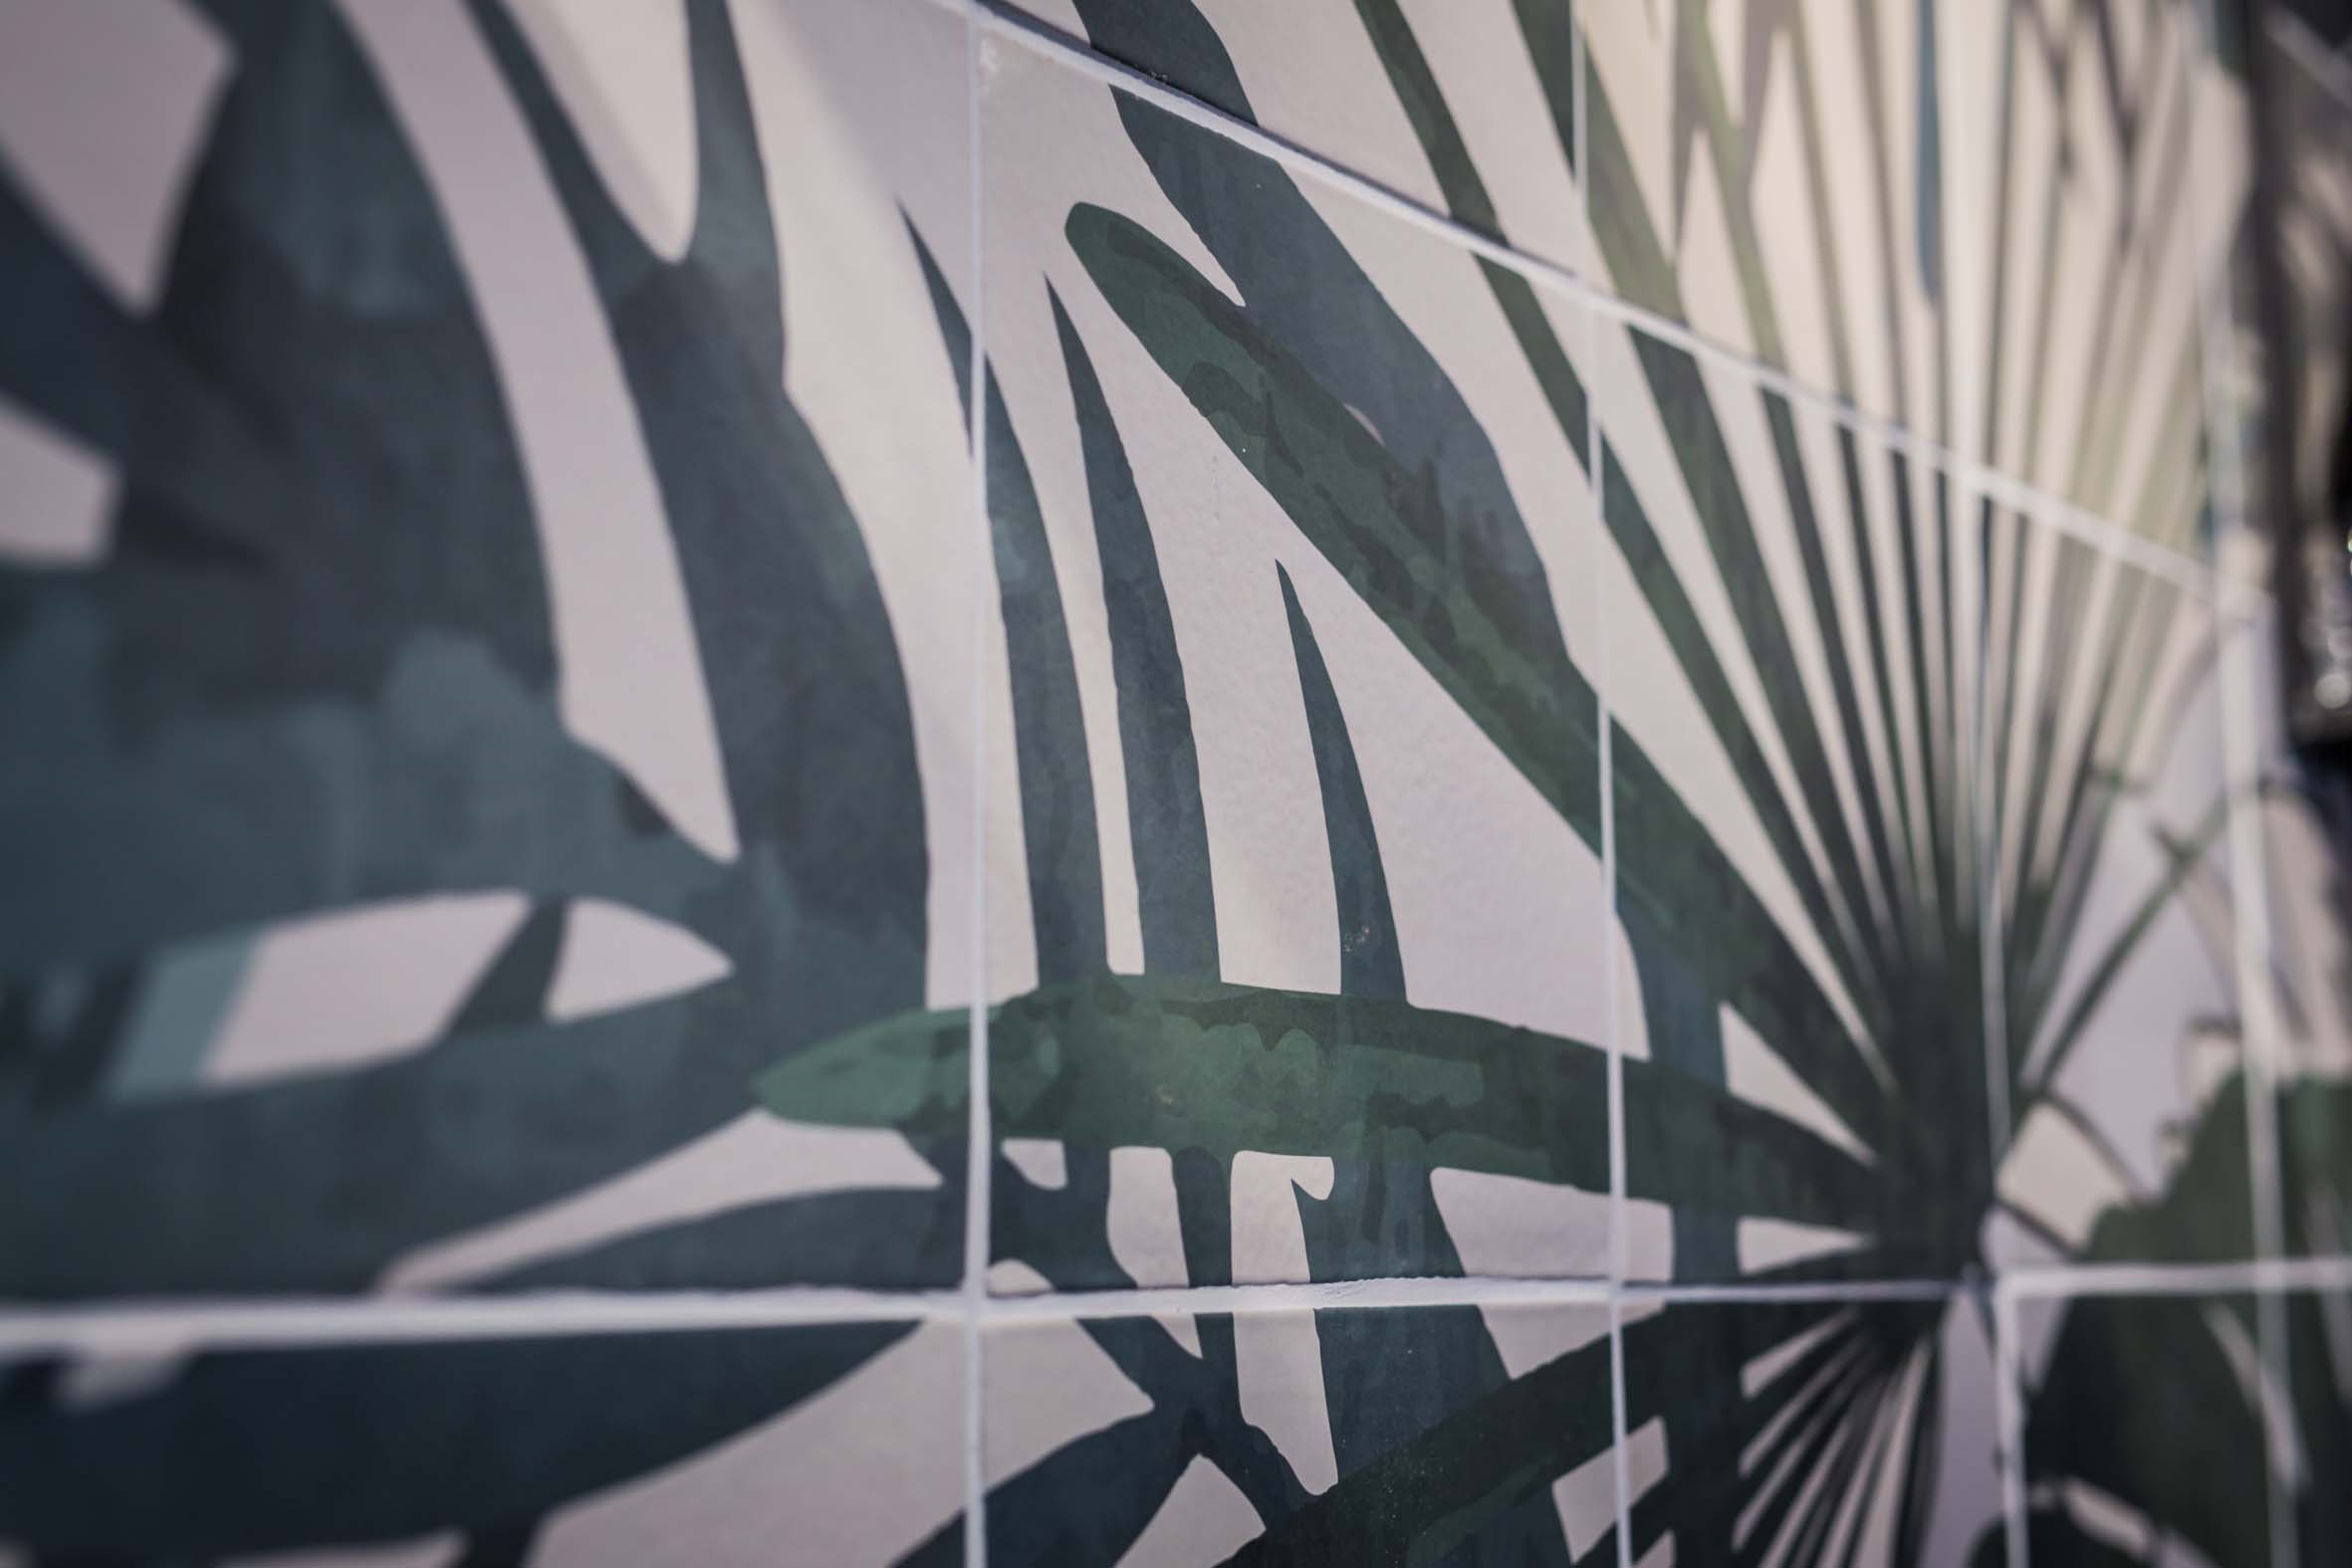 Tropical Design Wandmuster Innendesign Hellers Tea Bar Nobla Karlsruhe